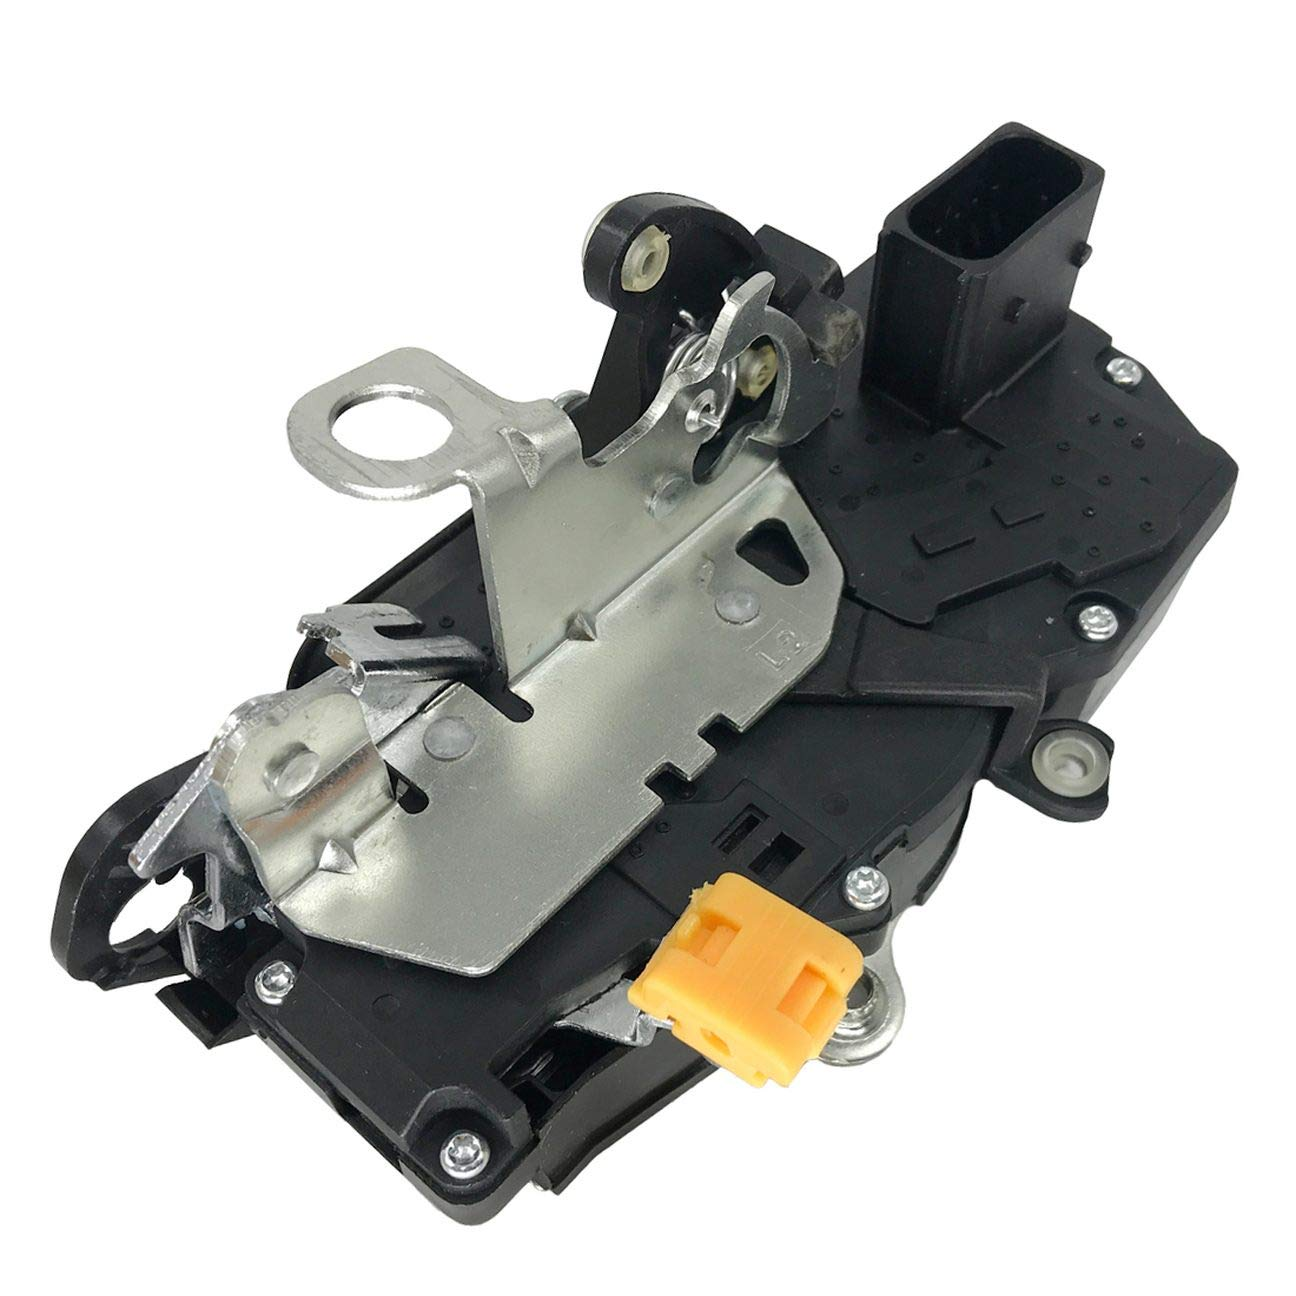 SKP SK931301 OE Replacement Door Lock Actuator Assembly with Latch